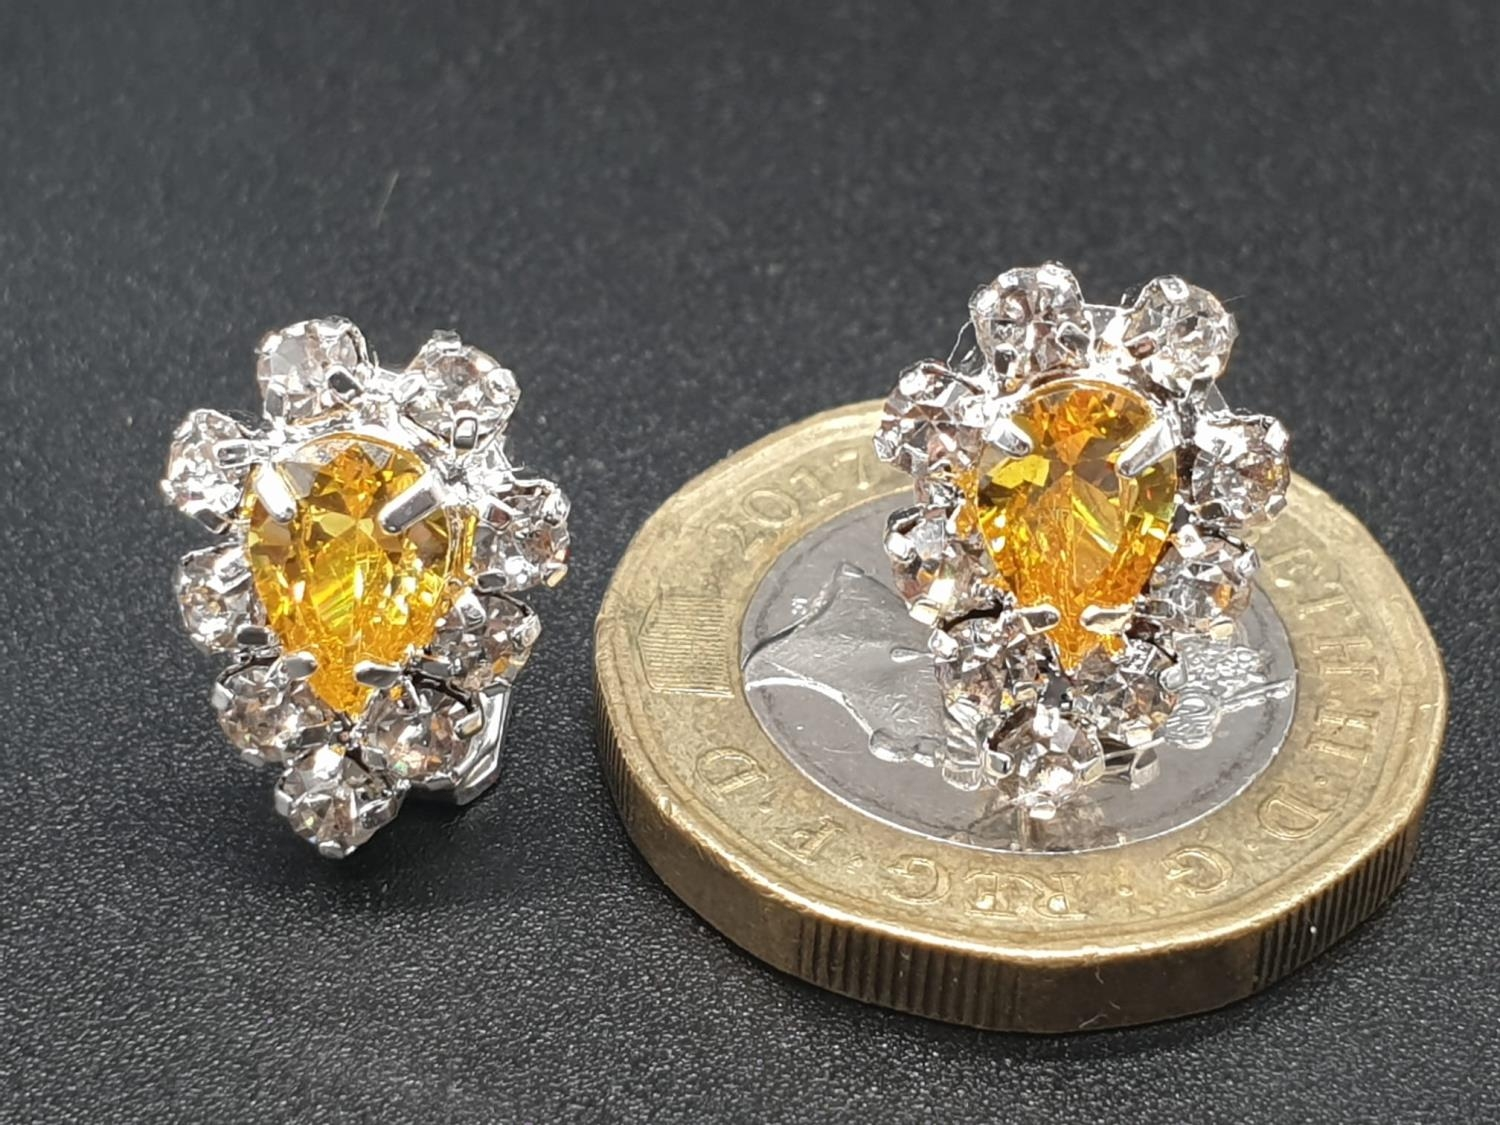 A white metal ring and earrings set with yellow topaz and clear sapphires. Ring size: N. Presented - Image 11 of 12